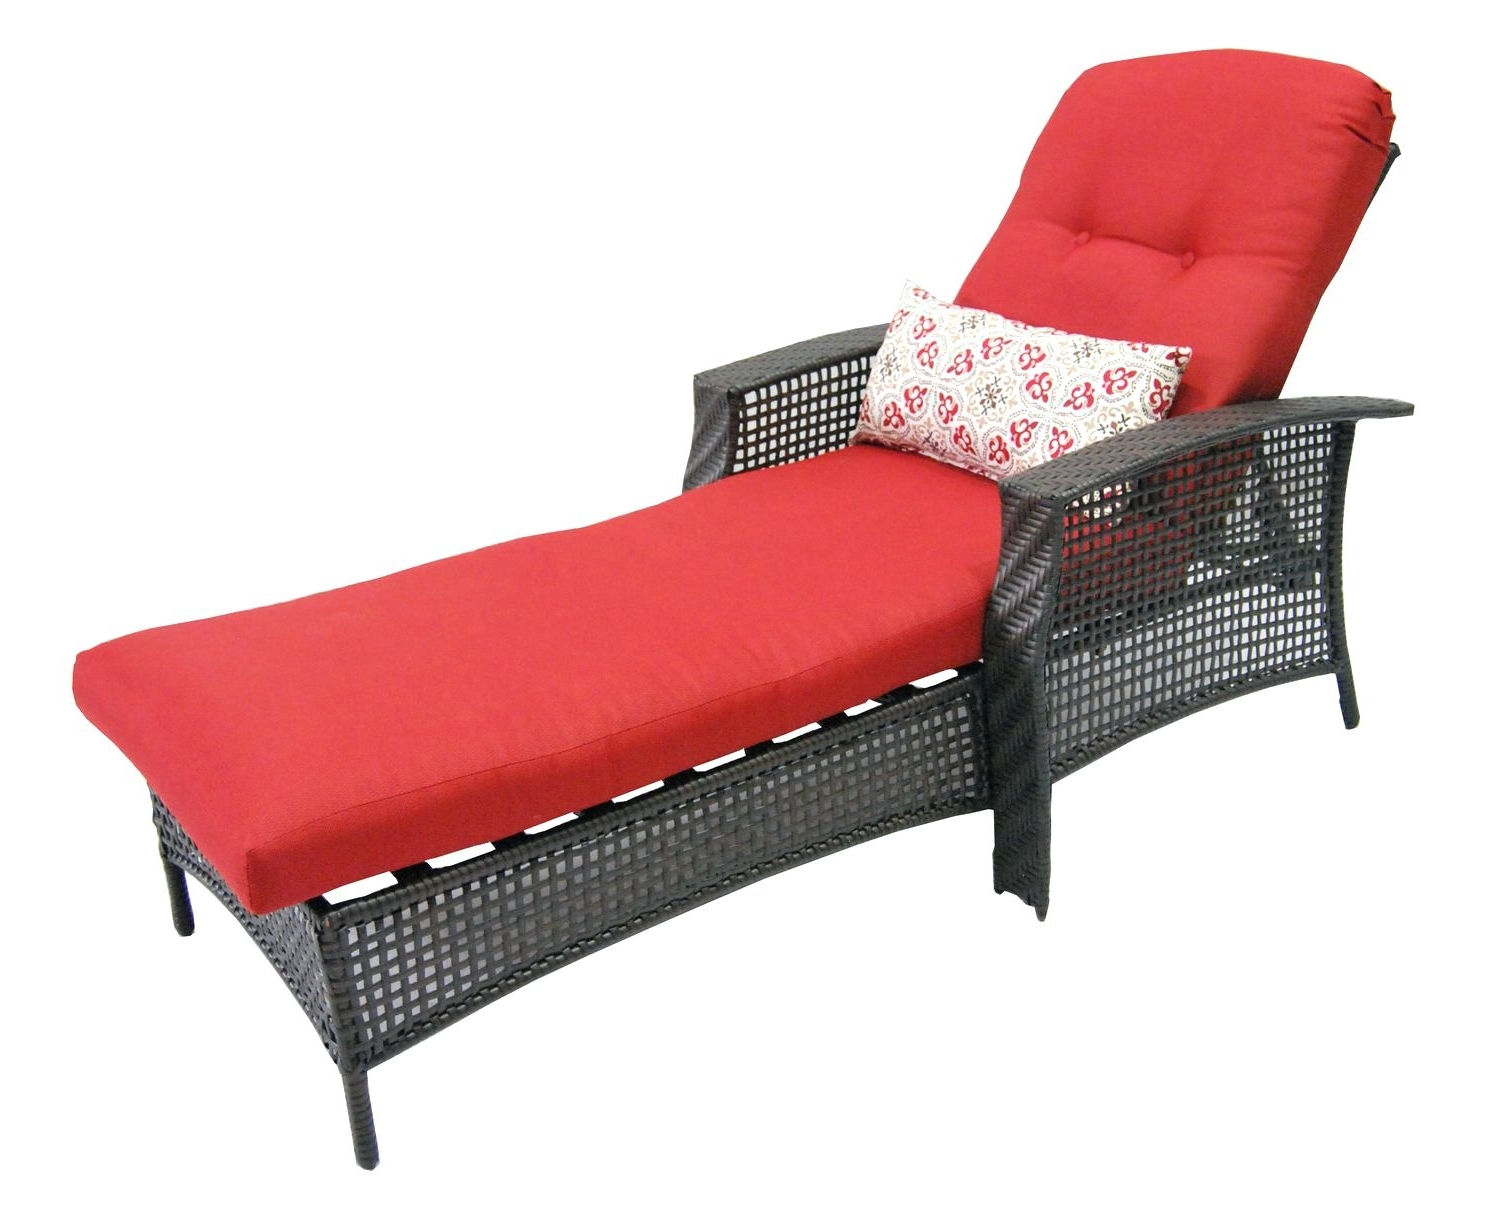 Well Known Chaise Lounge Chairs At Walmart With Regard To Terry Cloth Patio Chair Covers • Chair Covers Design (View 14 of 15)